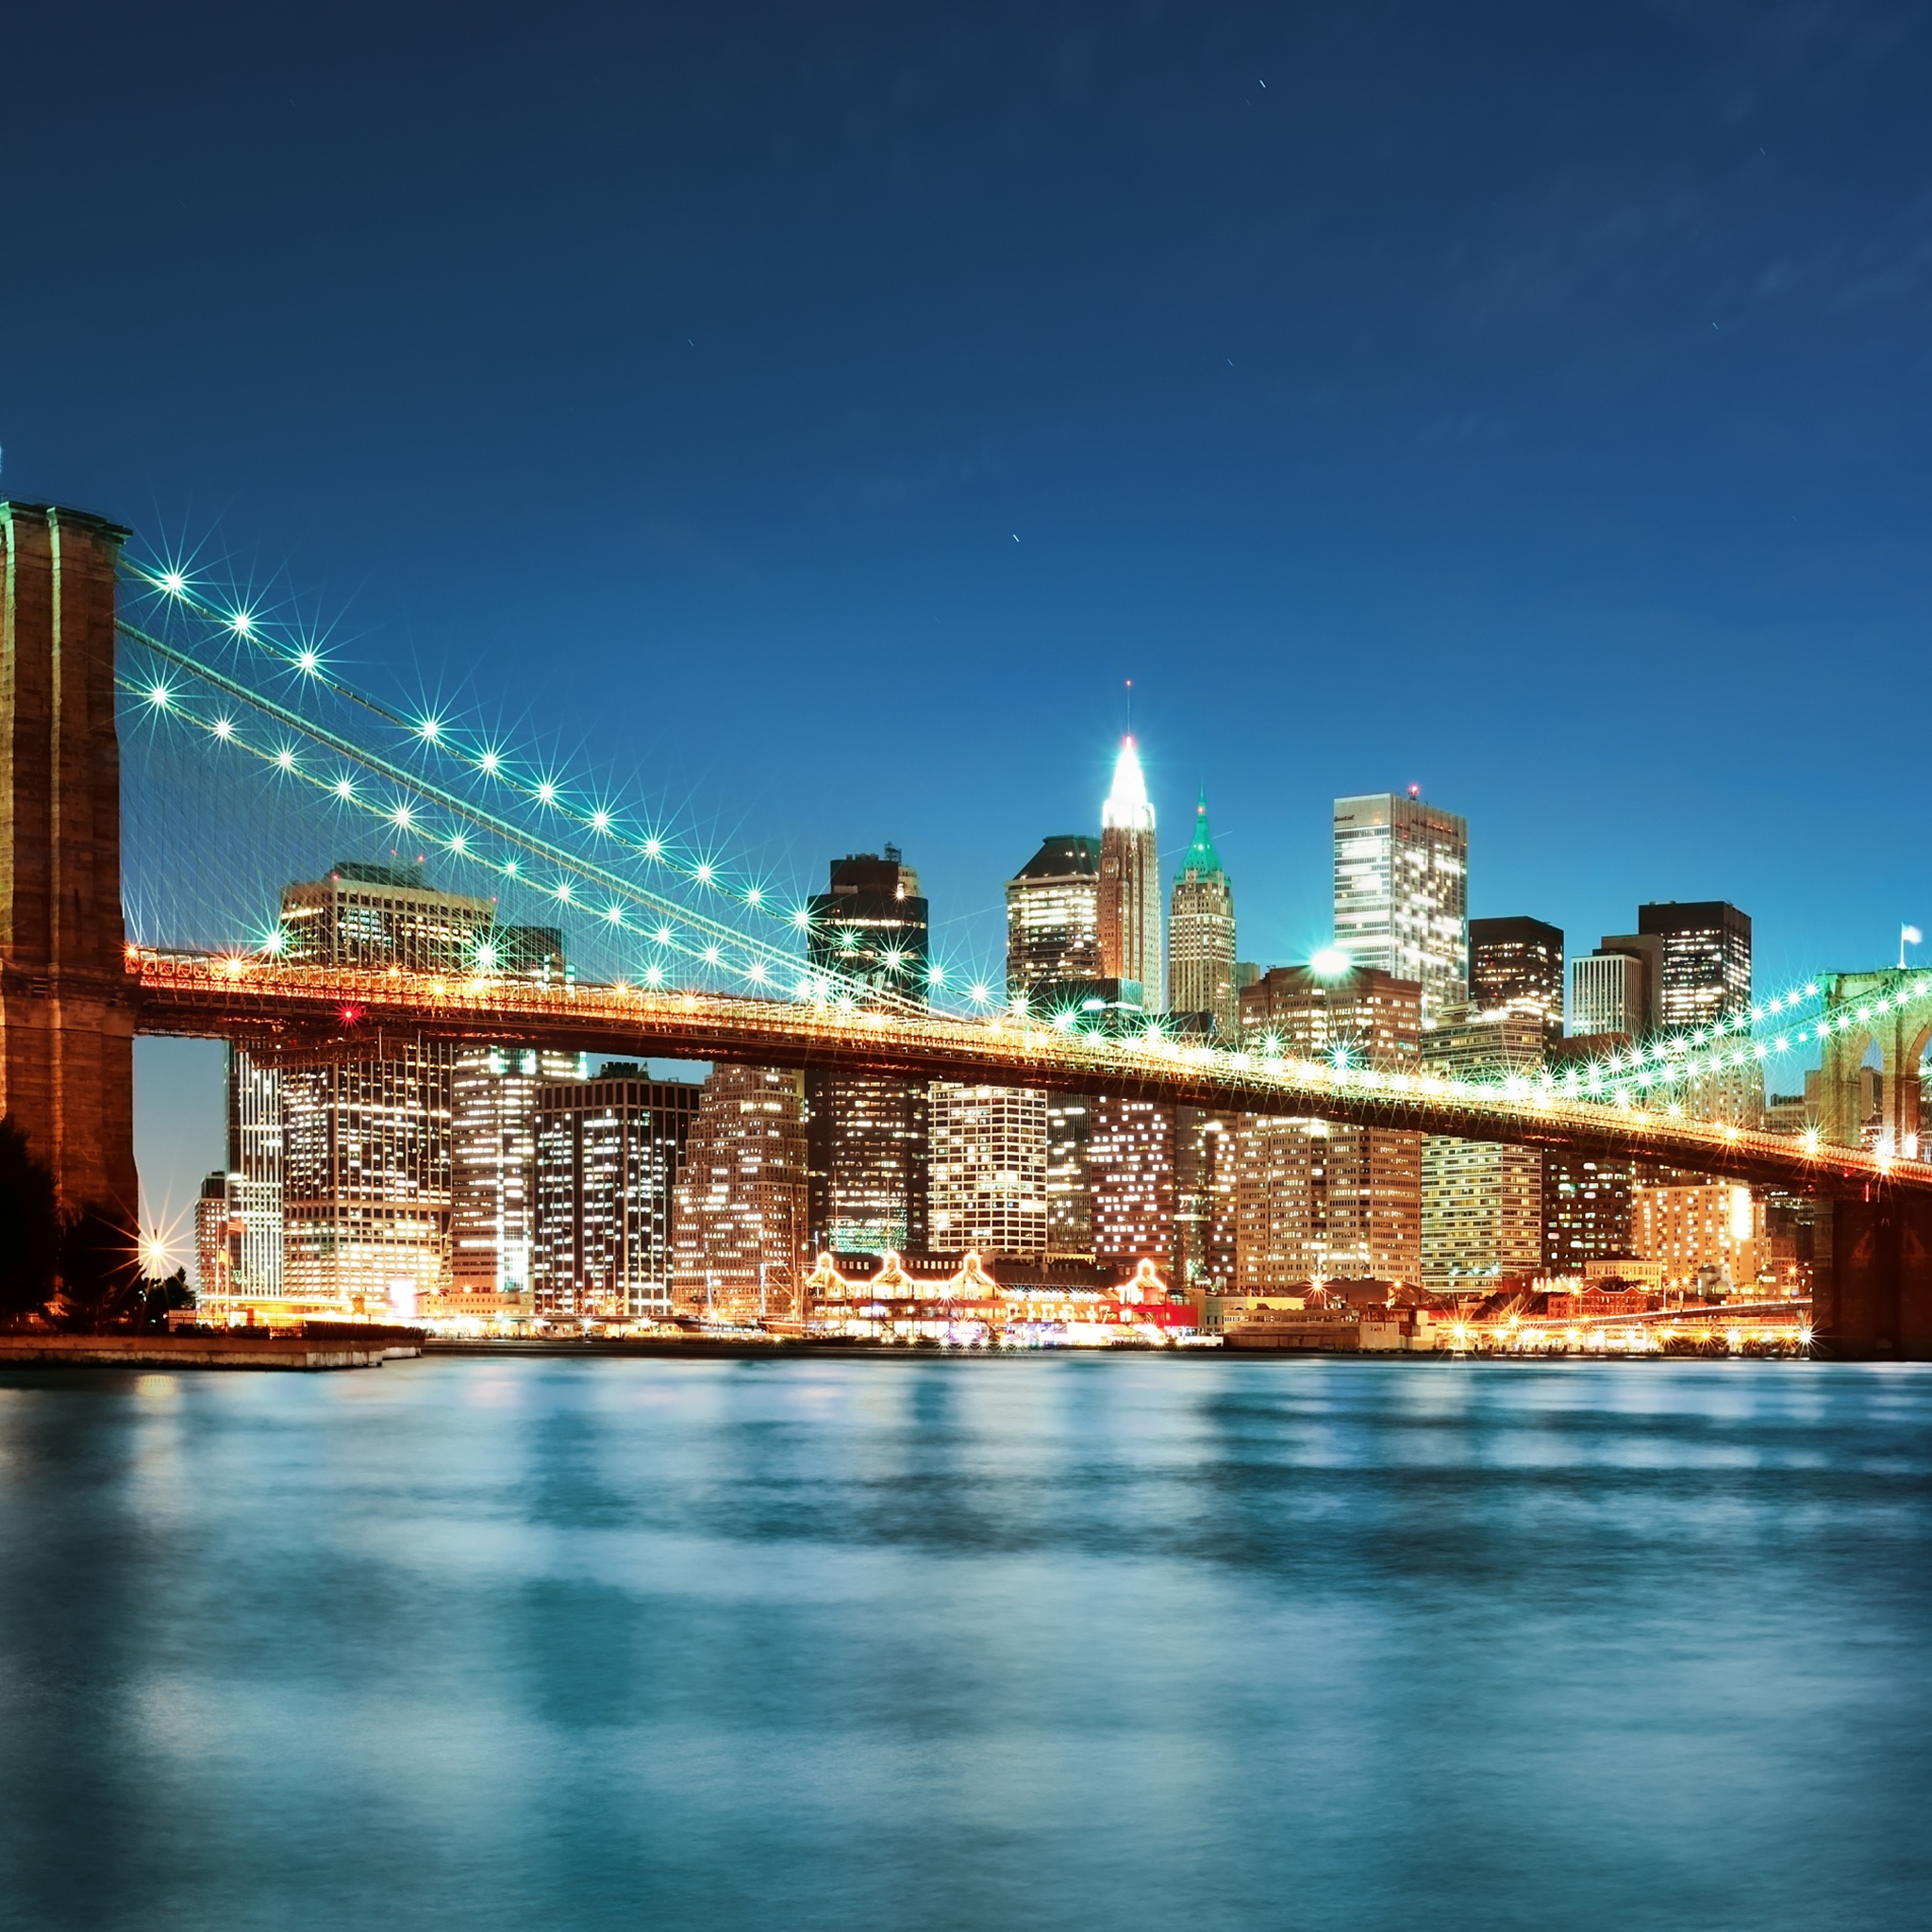 Iphone X New York Wallpaper New York City Ipad Wallpaper For Iphone X 8 7 6